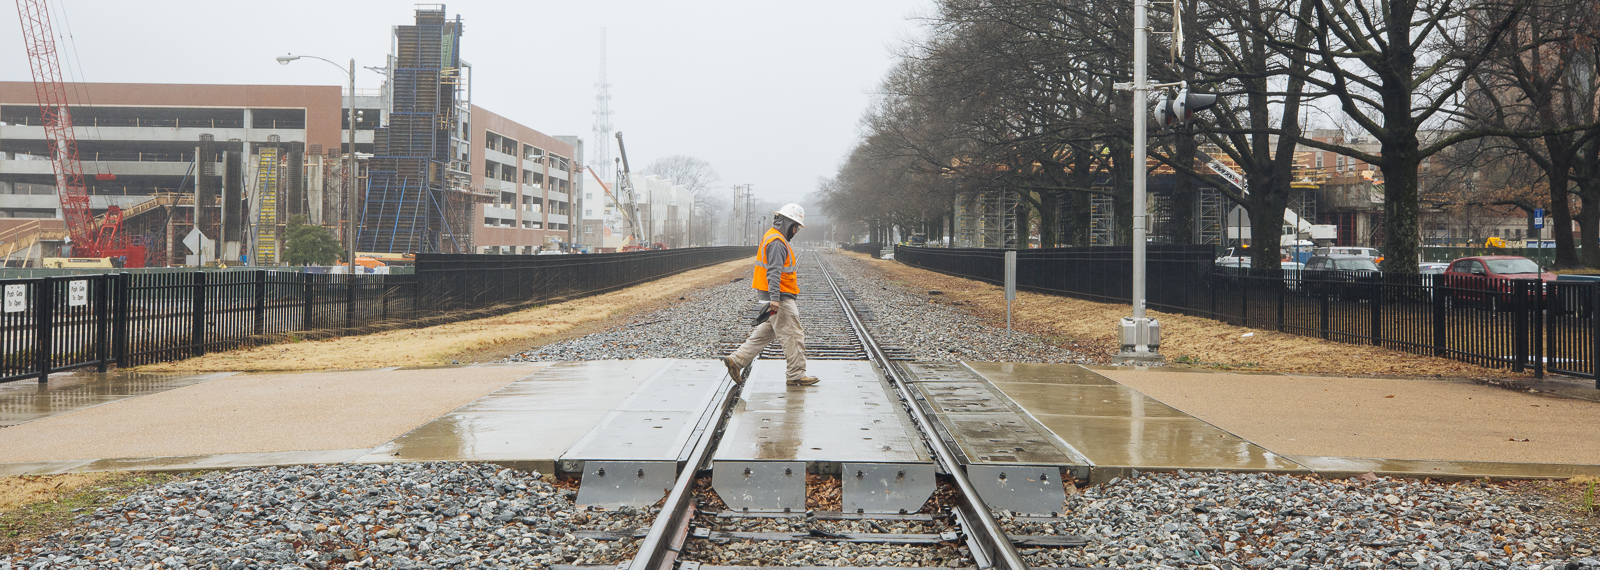 A construction worker crosses the railroad tracks at the University of Memphis with the pending pedestrian under construction in the far background. (Ziggy Mack) <span class='image-credits'></span>